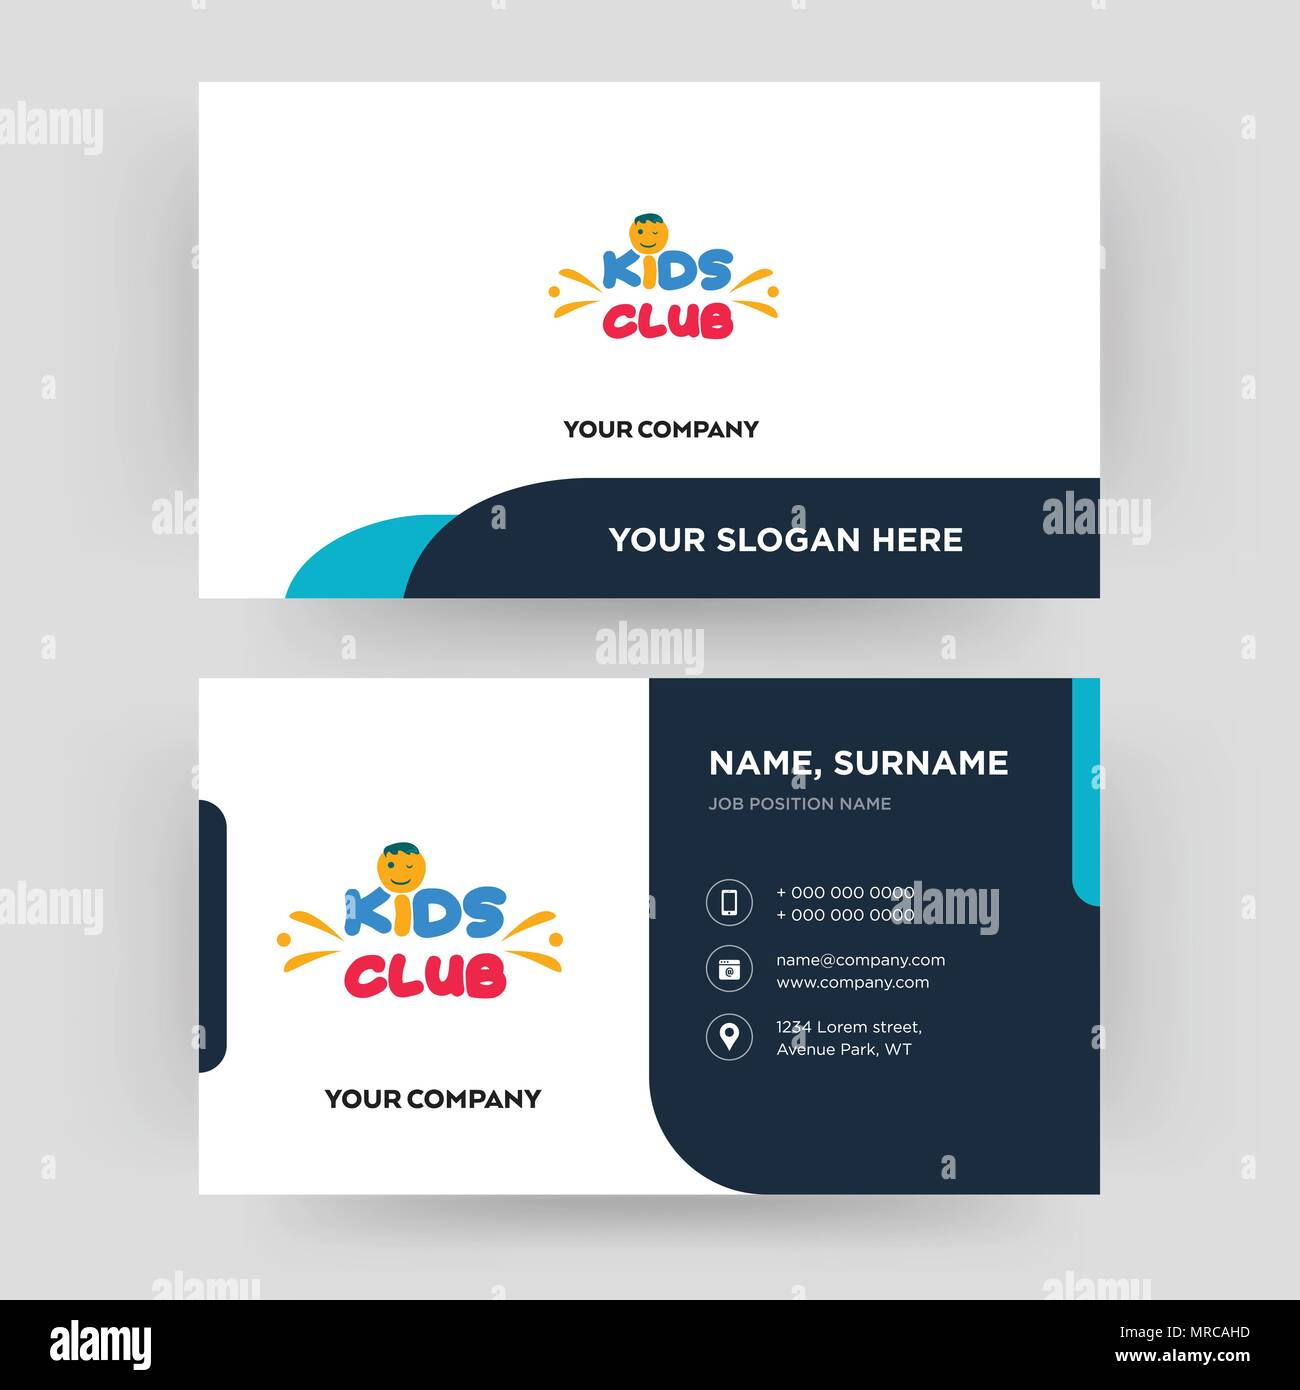 Kids club business card design template visiting for your company kids club business card design template visiting for your company modern creative and clean identity card vector cheaphphosting Images